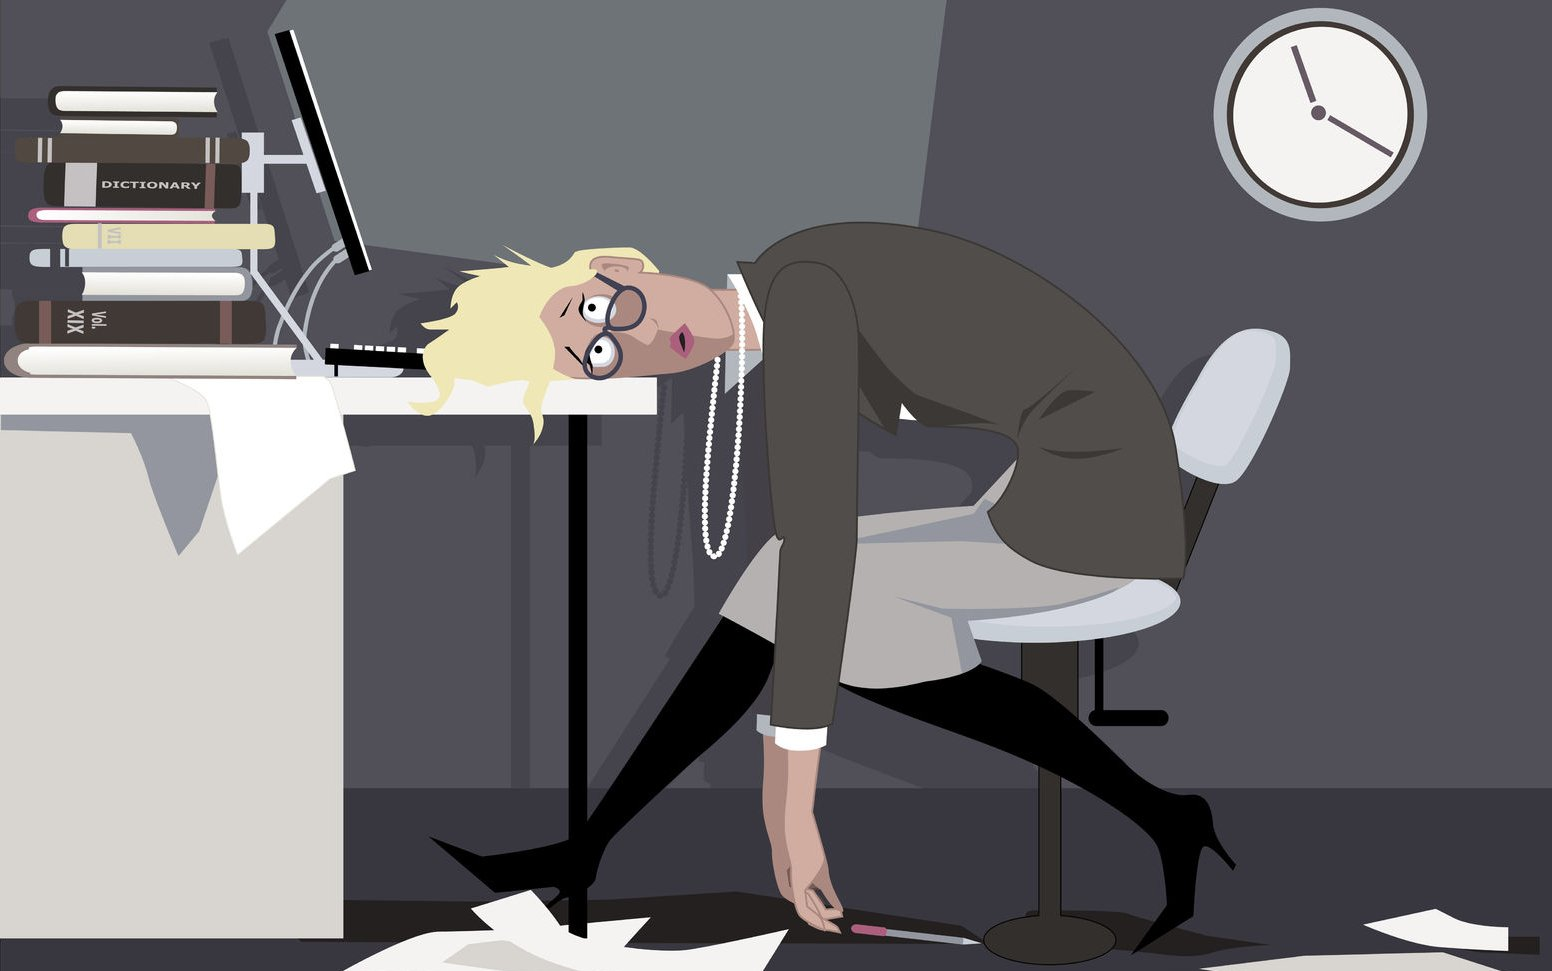 46795765 - exhausted woman sitting in the office late at night, putting her head on the desk, eps 8 vector illustration